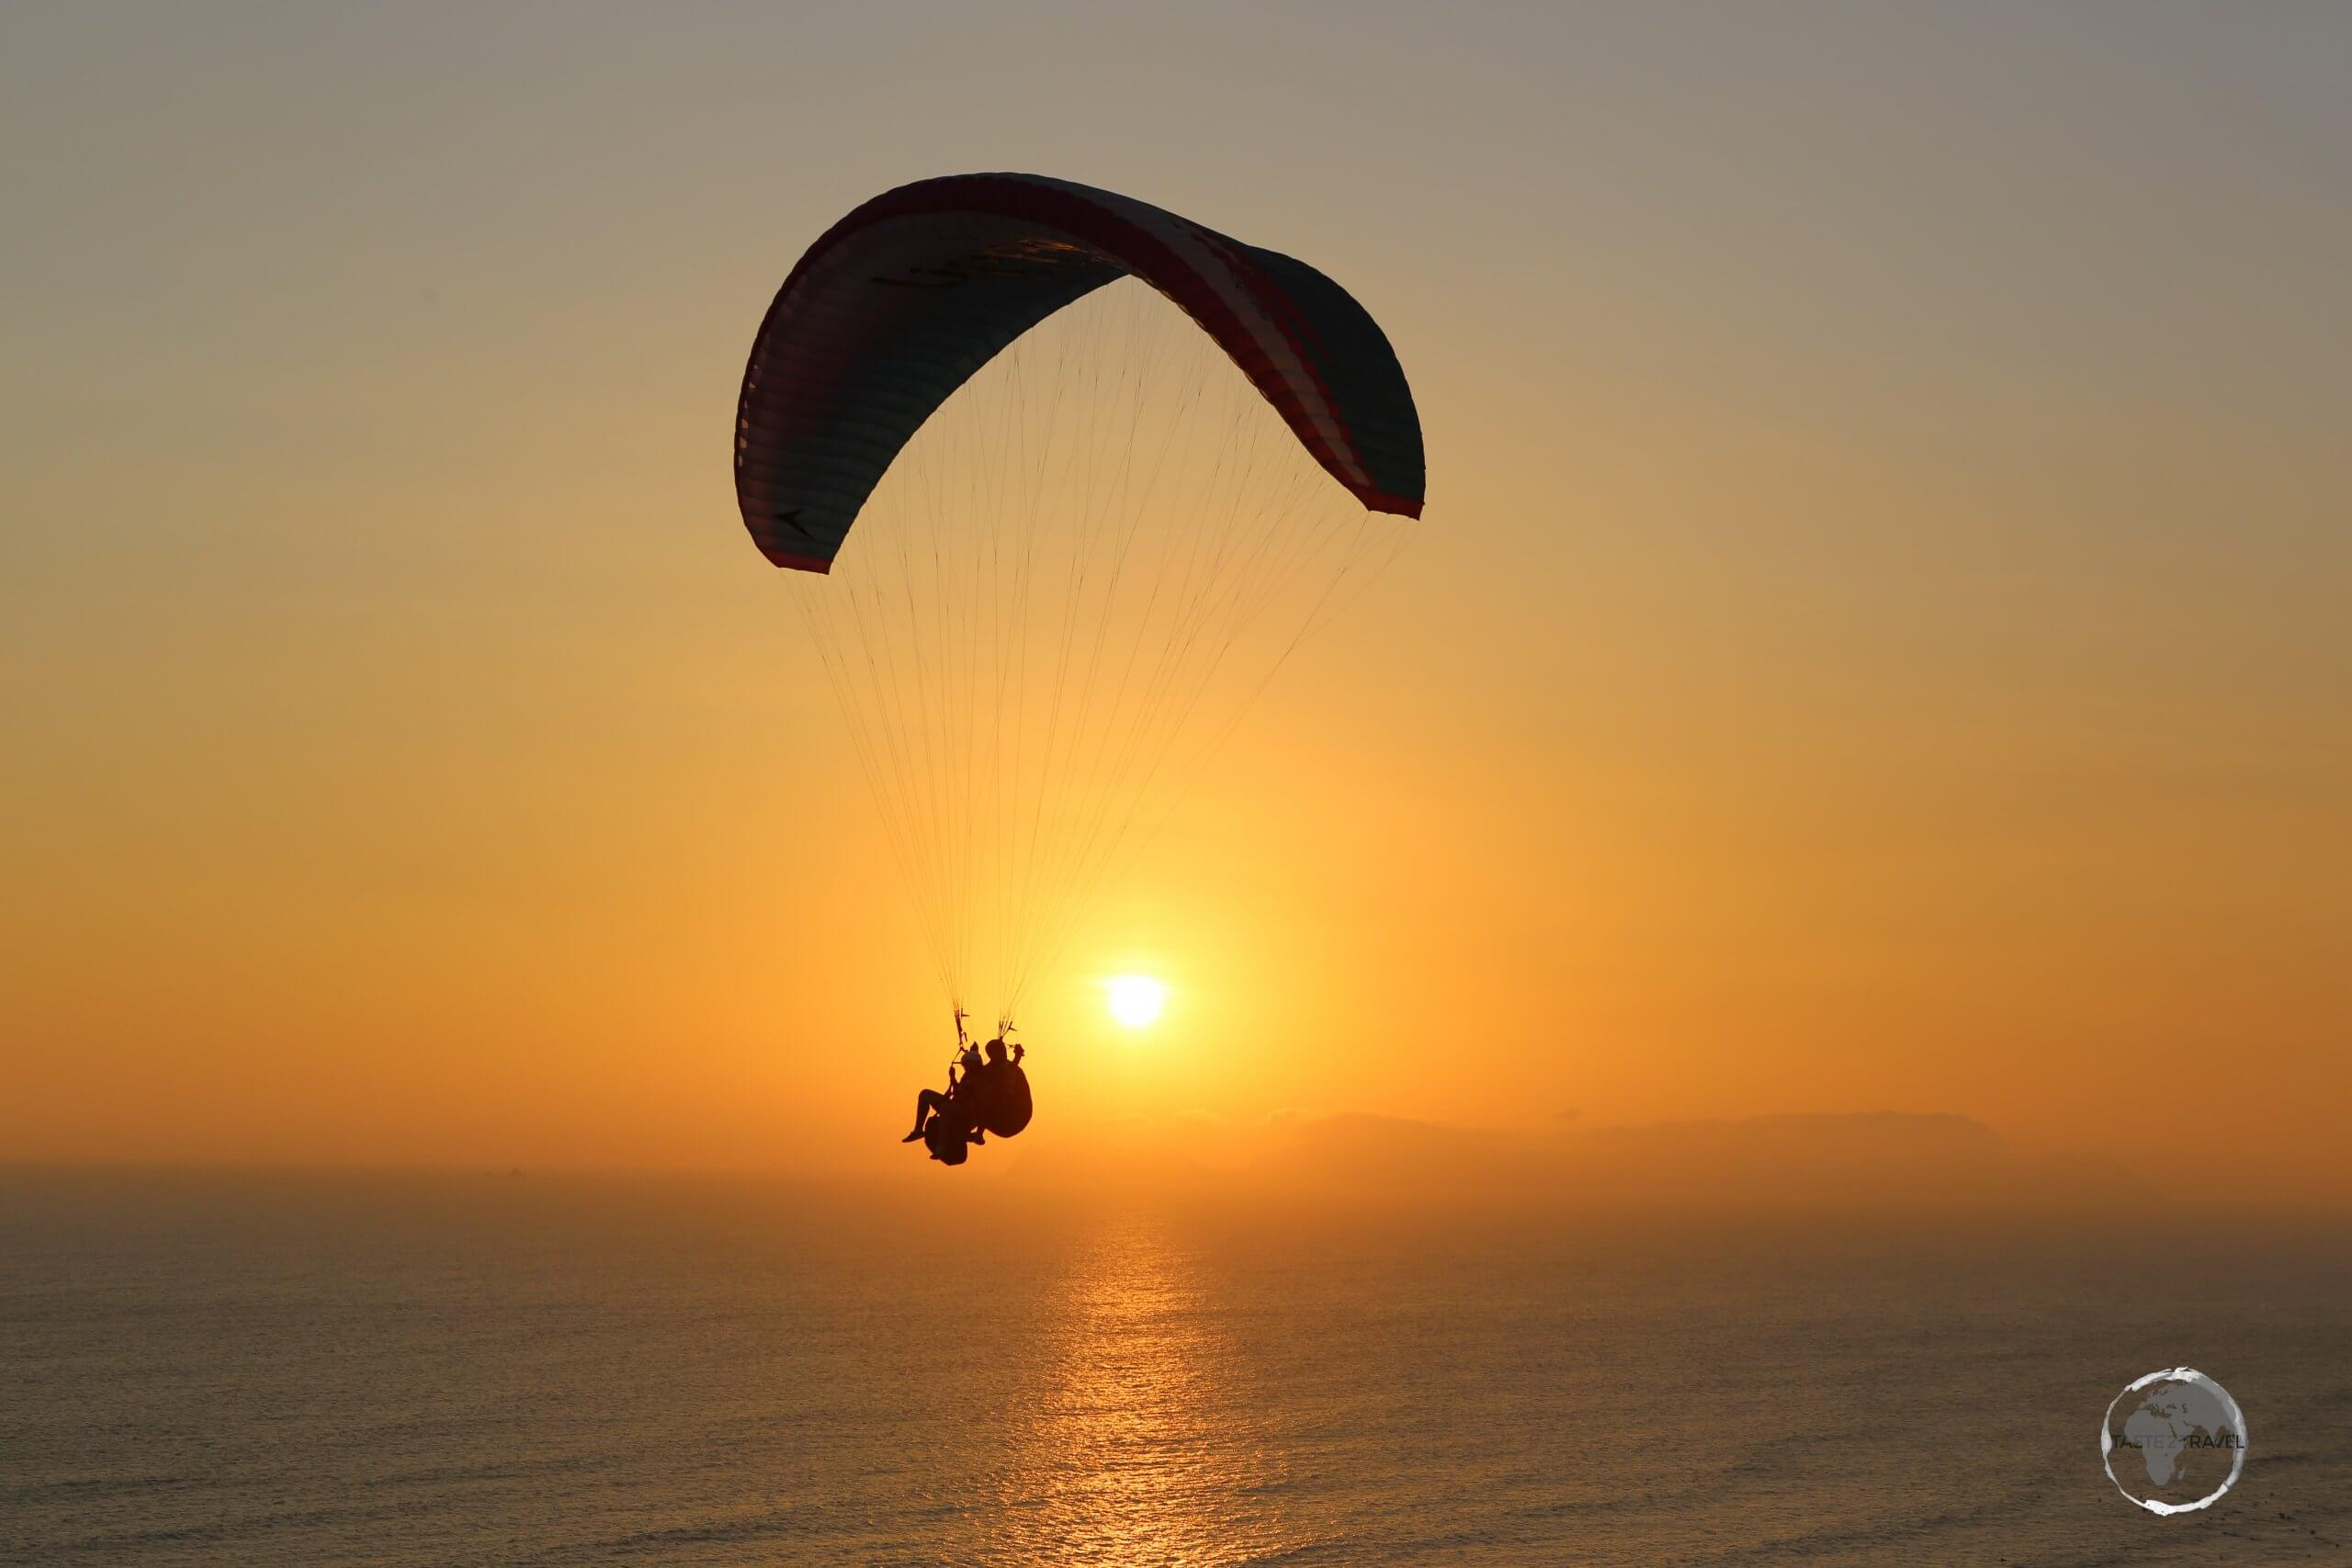 Tandem paragliders taking in the sunset over the Pacific Ocean in Lima, the capital of Peru.